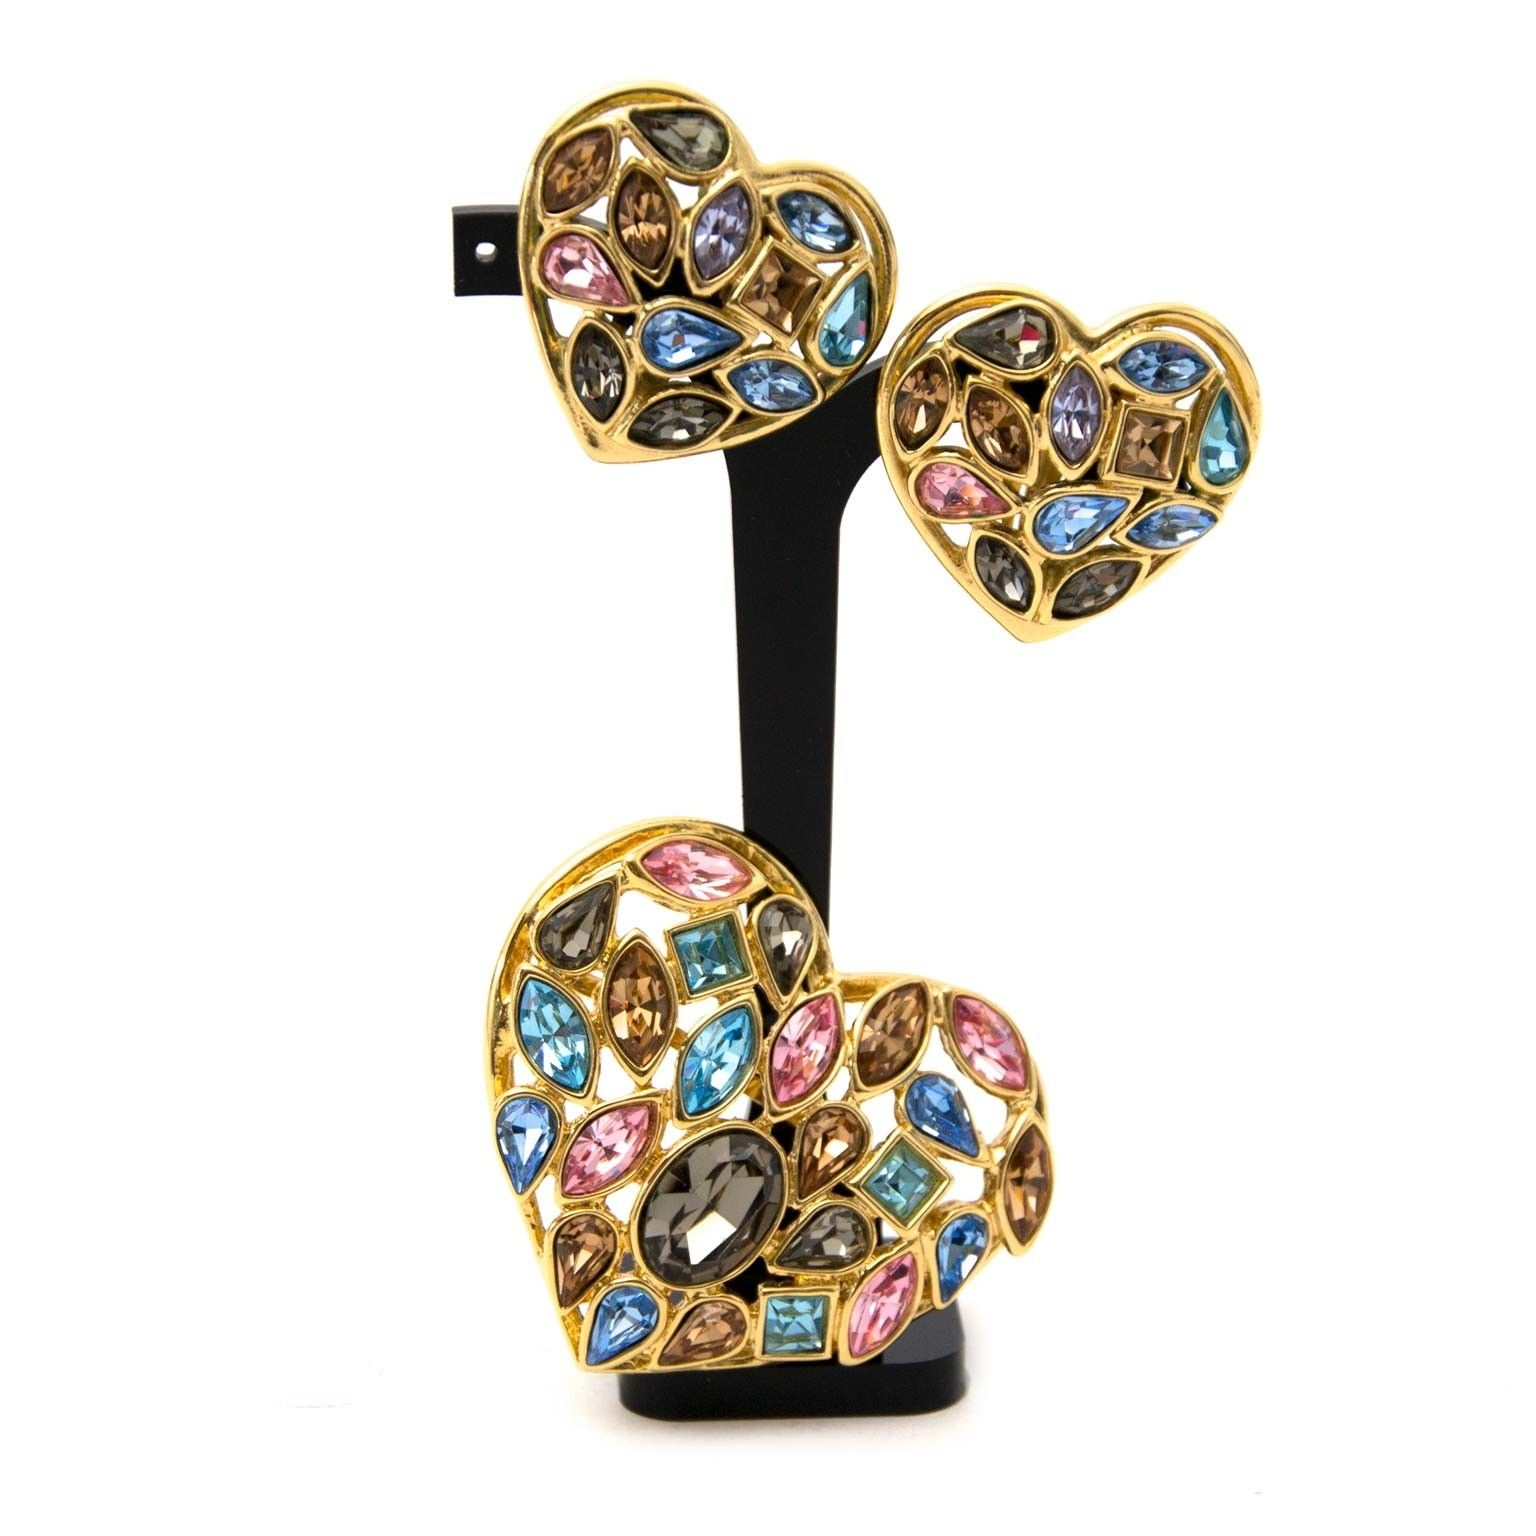 35f6a6a209f Earrings   Brooch ○ Buy and Sell Authentic Luxury. Yves Saint Laurent ...